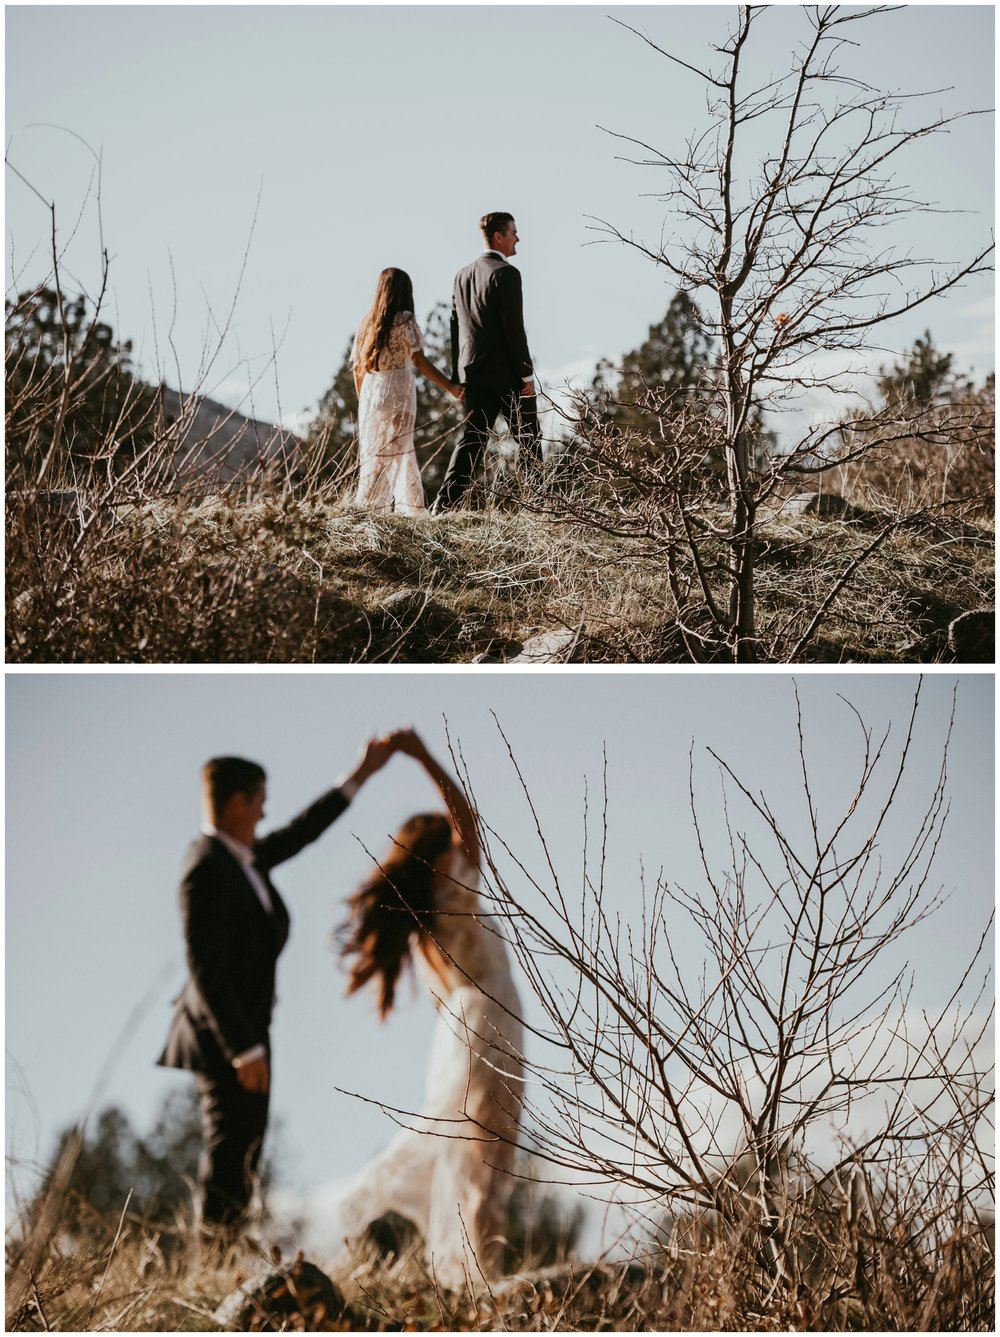 Mount_Laguna_Engagement_The_Singlers_0003.jpg